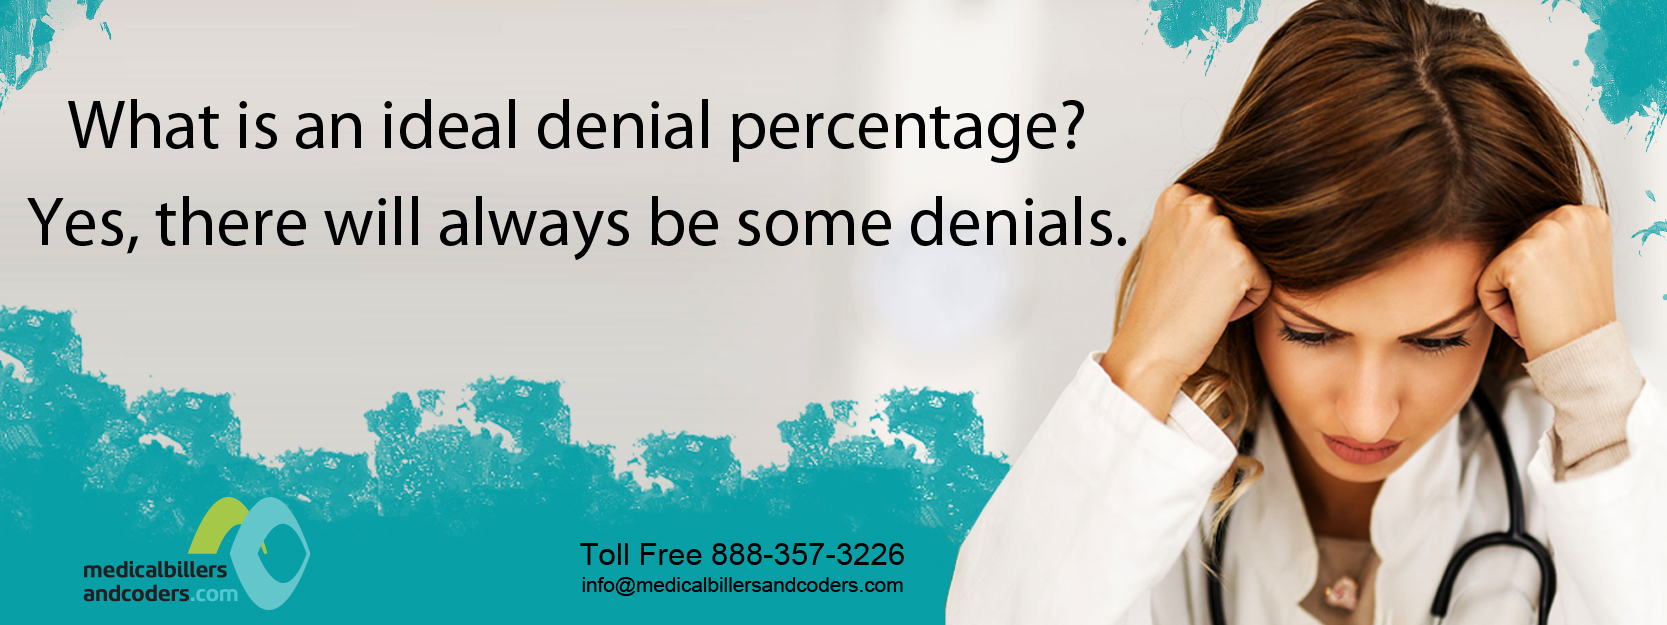 What is an ideal denial percentage? Yes, there will always be some denials